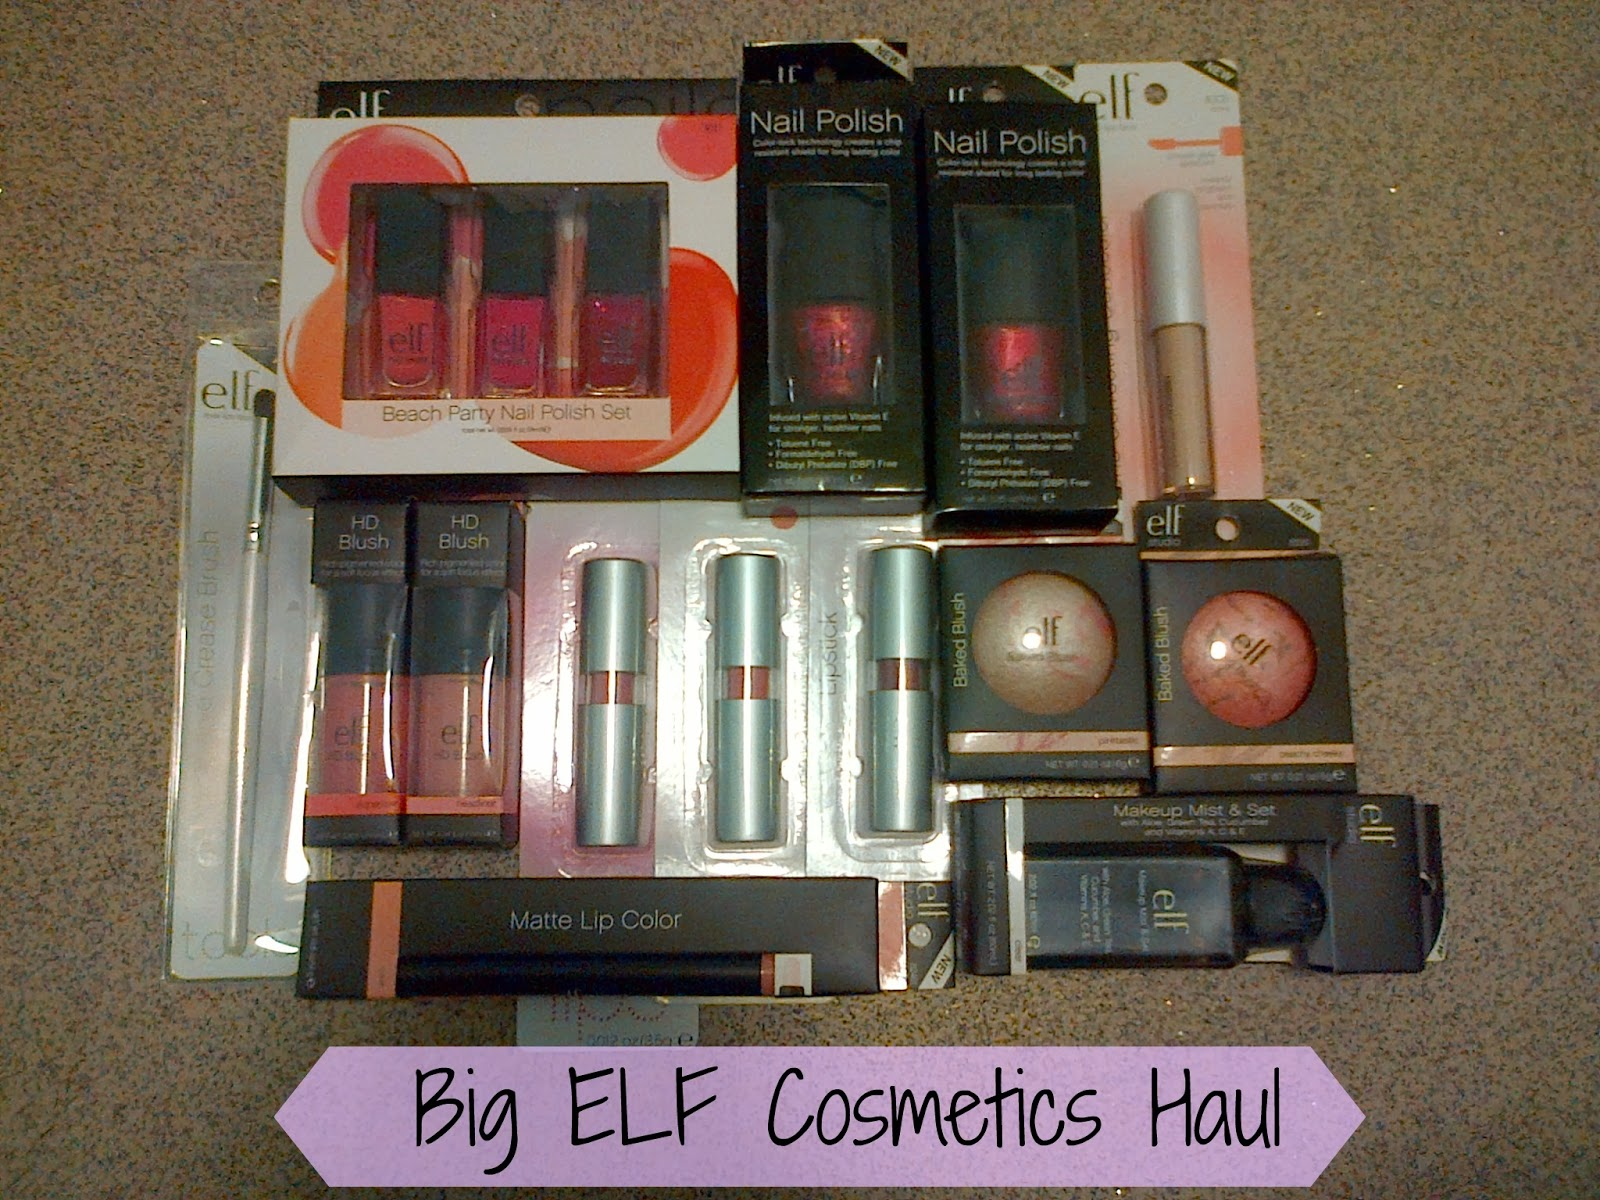 ELF Cosmetics Haul